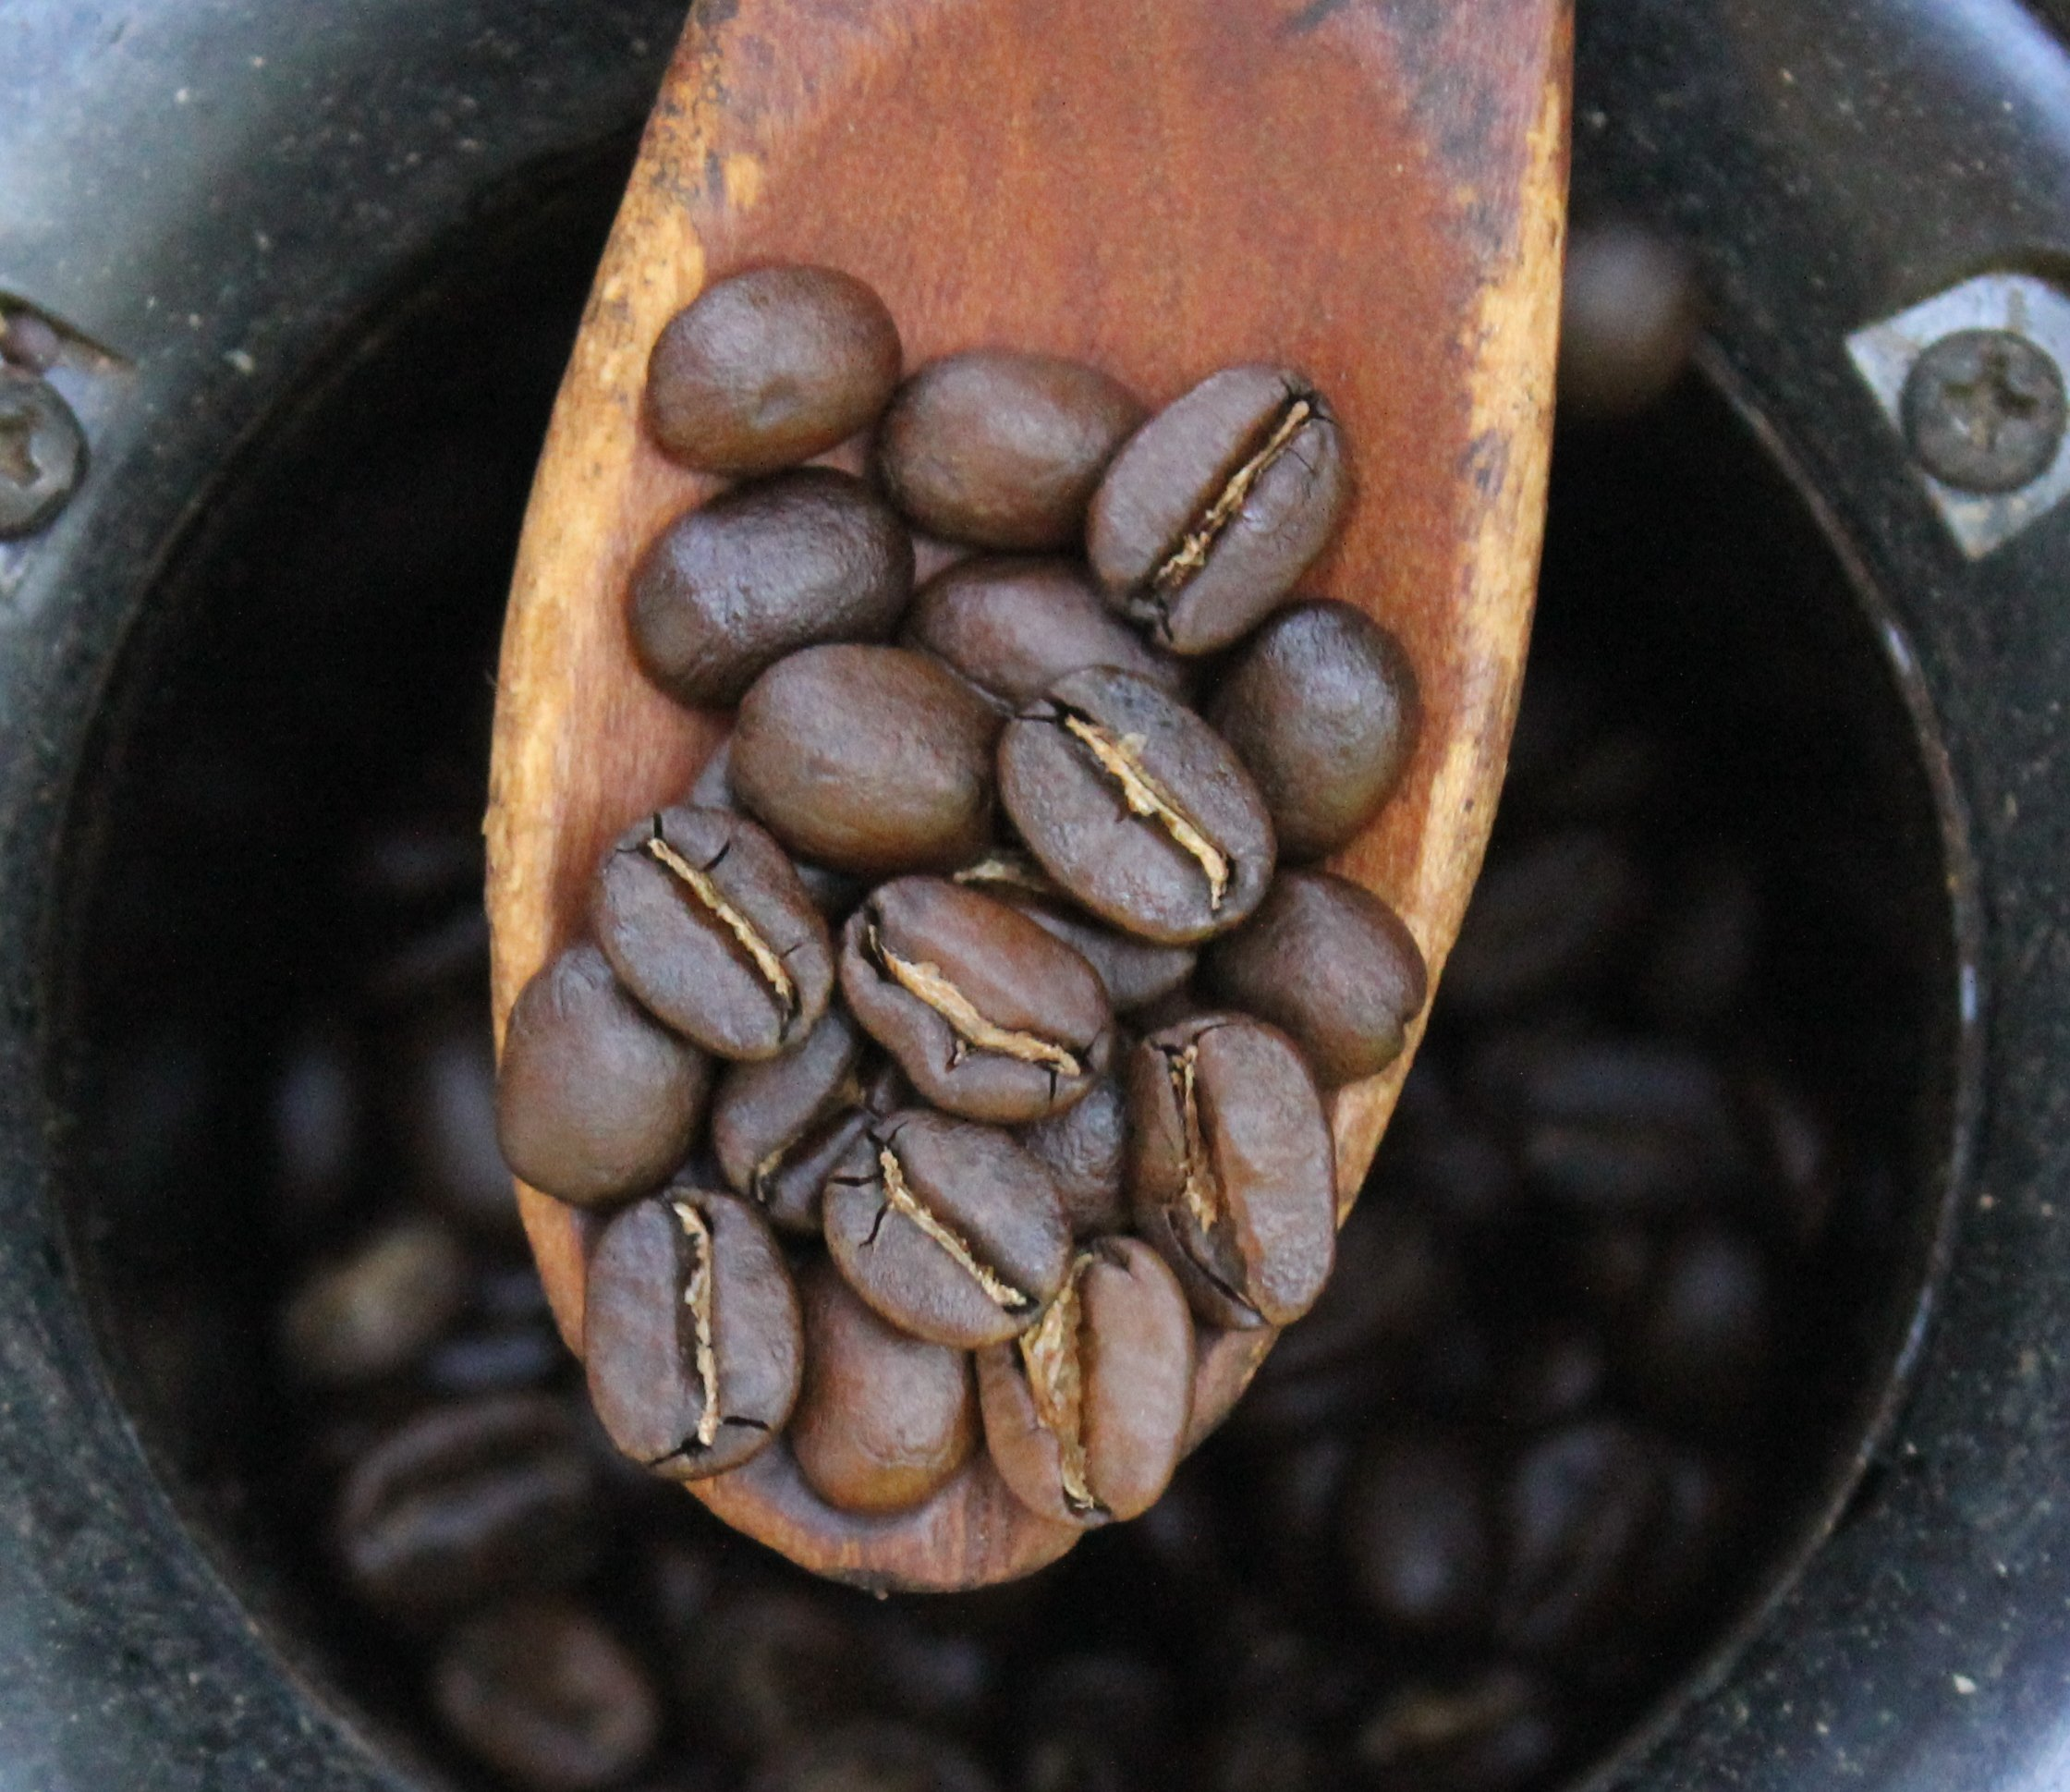 Filecoffee Roast Levels 4 The Home Roaster Color Chartg